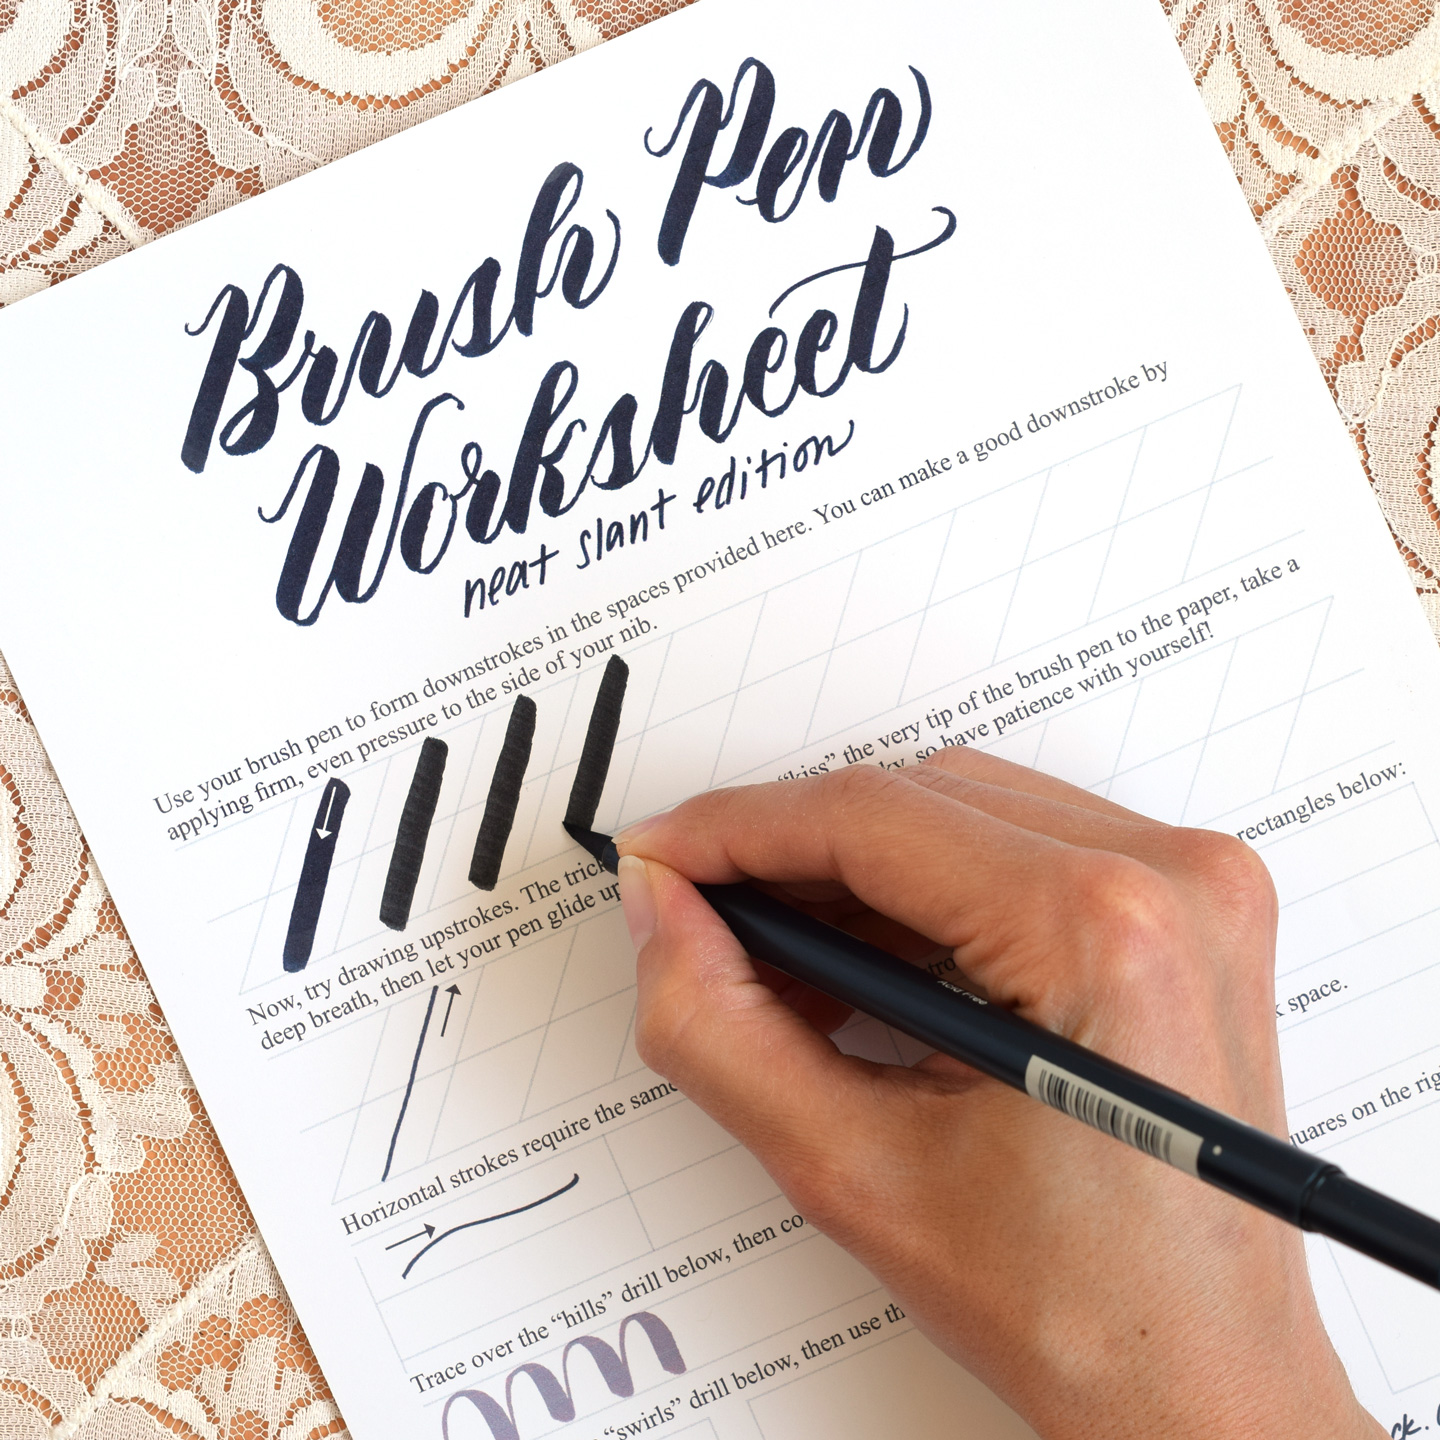 Free brush pen calligraphy worksheet neat slant edition